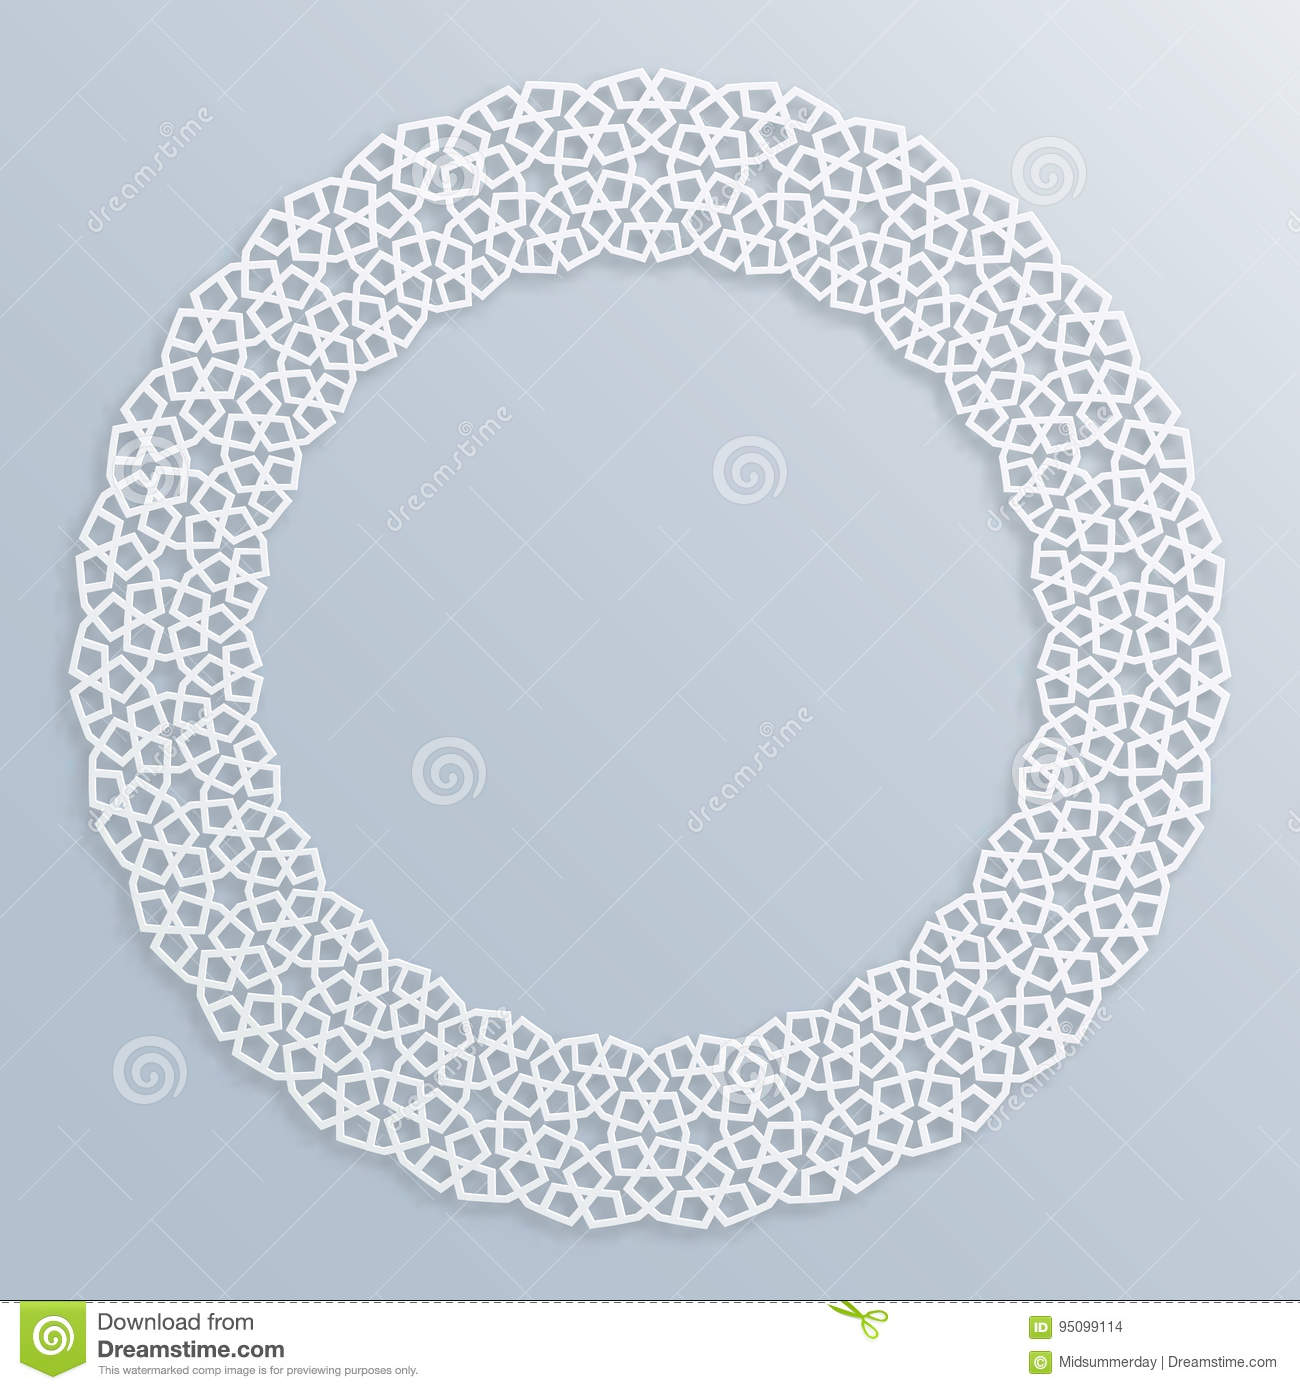 Motif Relief 3d Round White Frame Vignette Islamic Geometric Border Bas